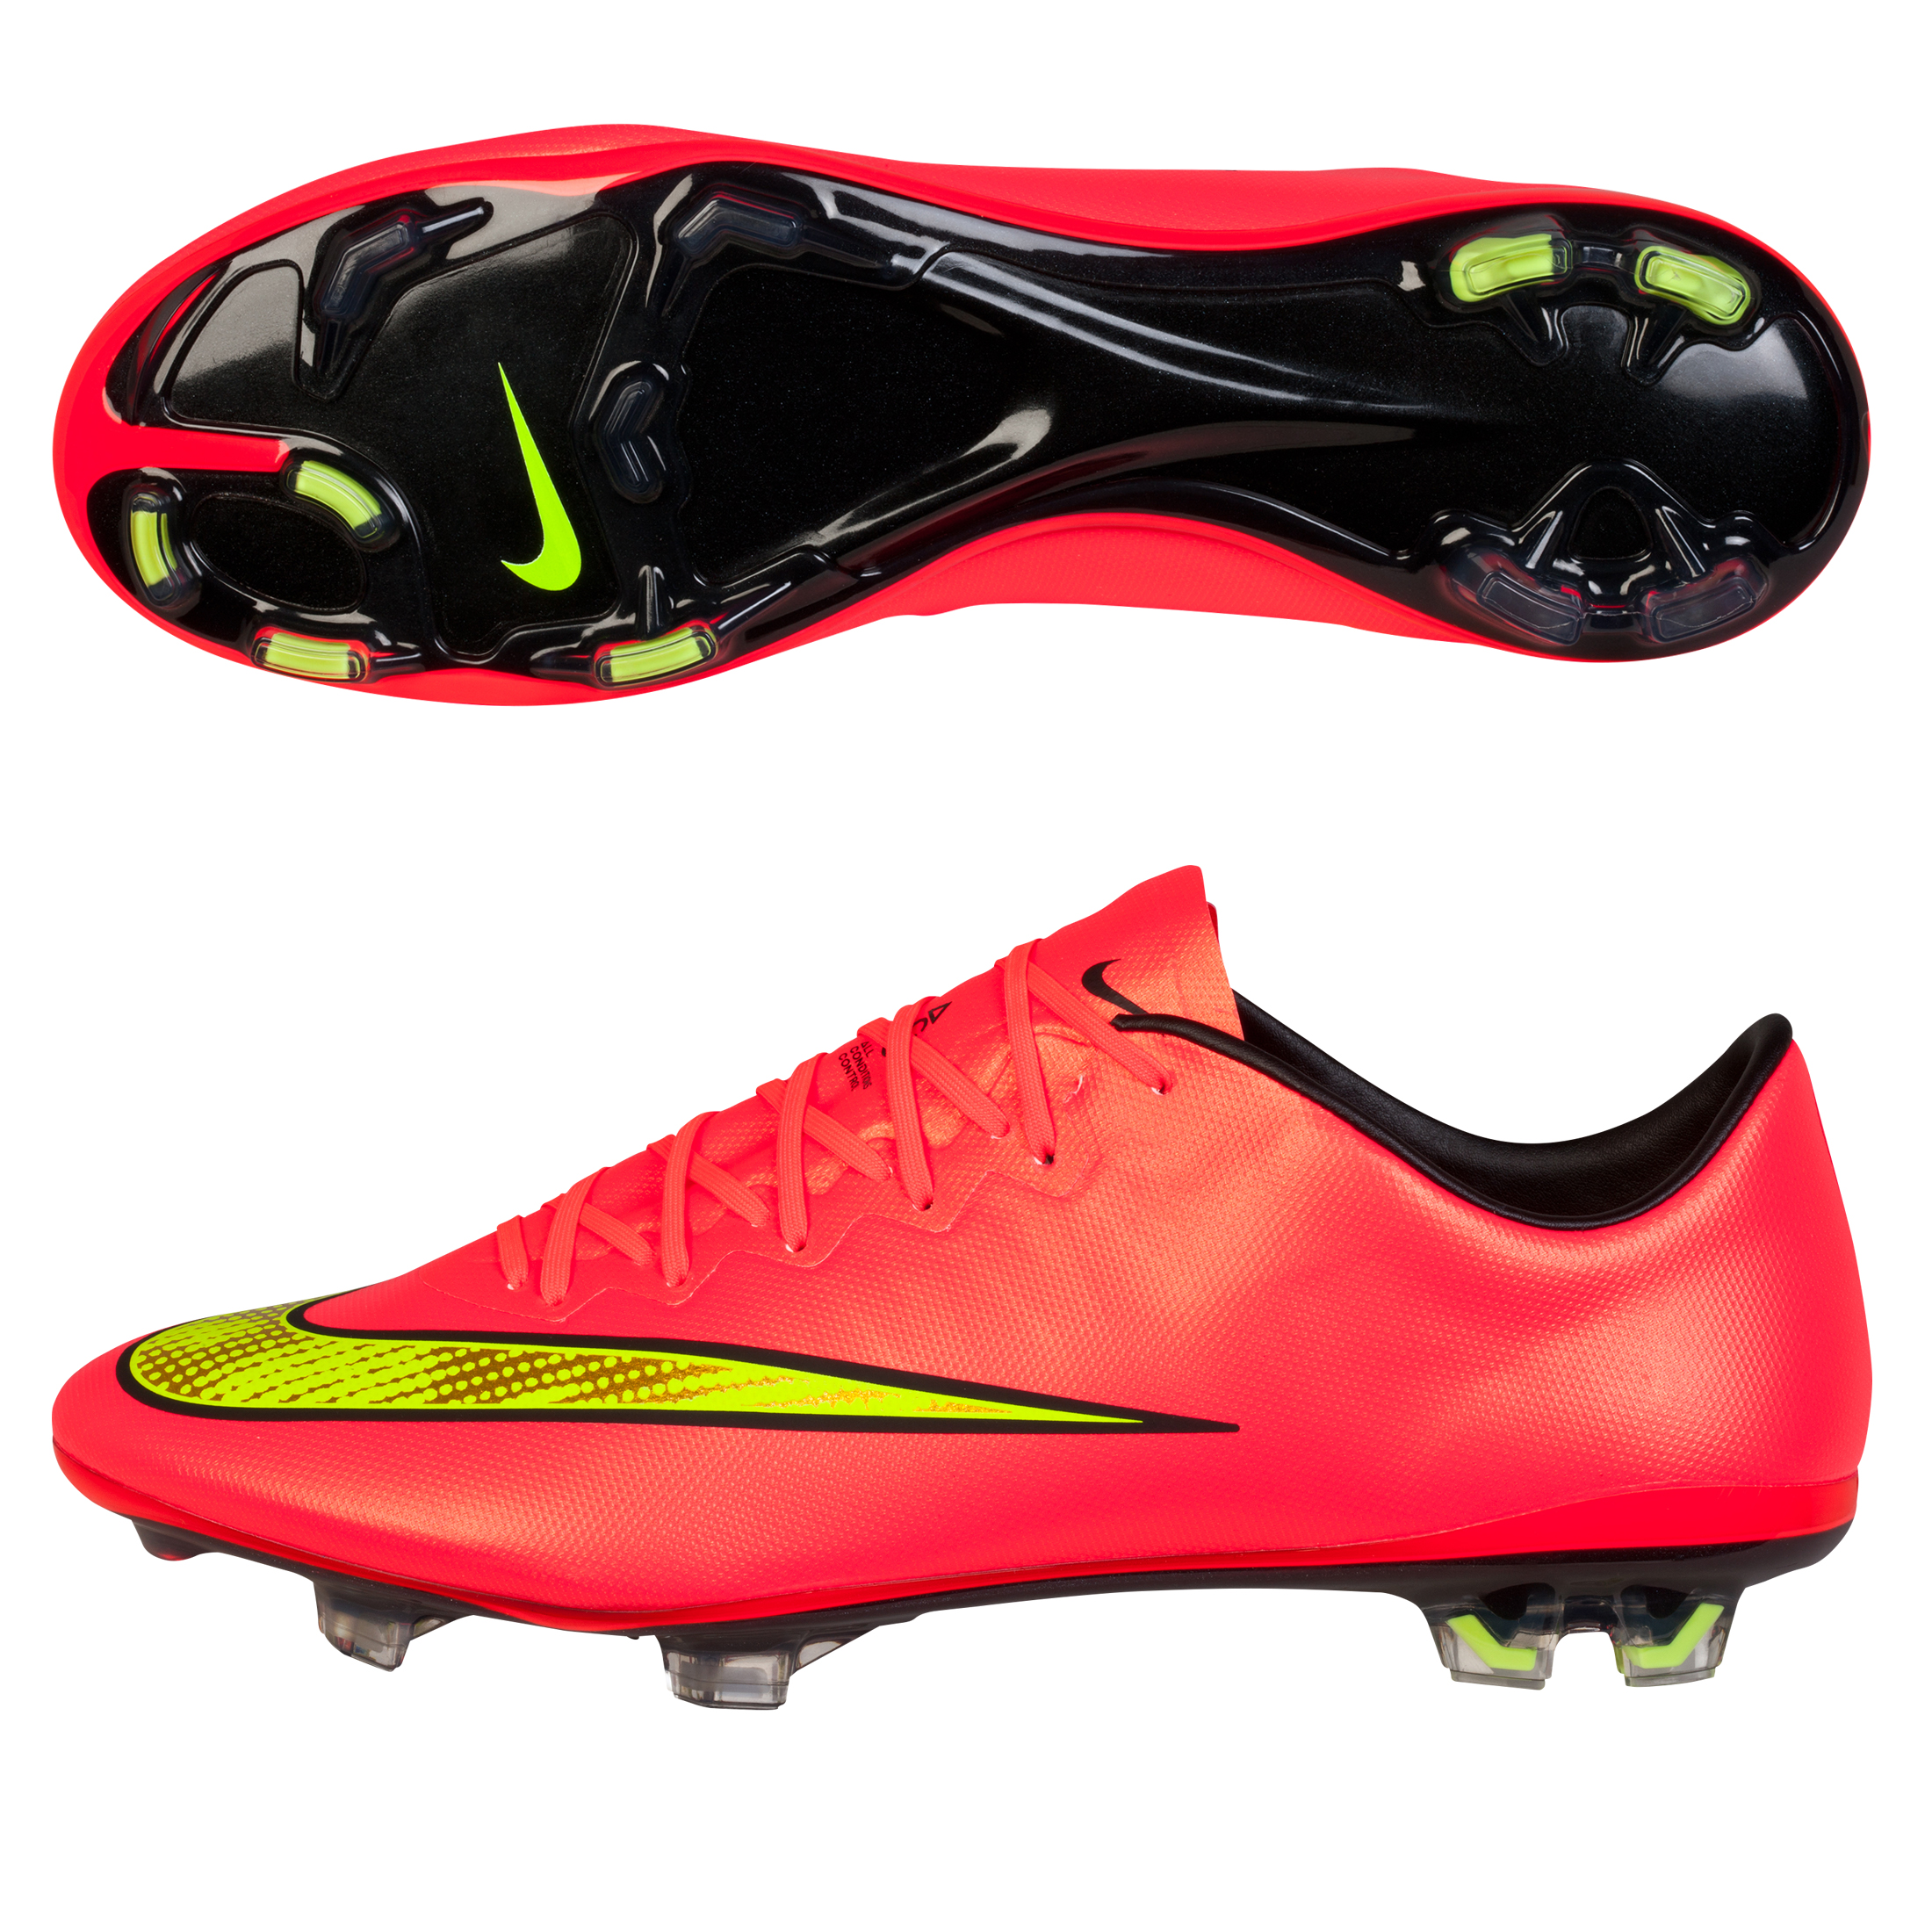 Nike Mercurial Vapor X Firm Ground Football Boots Pink